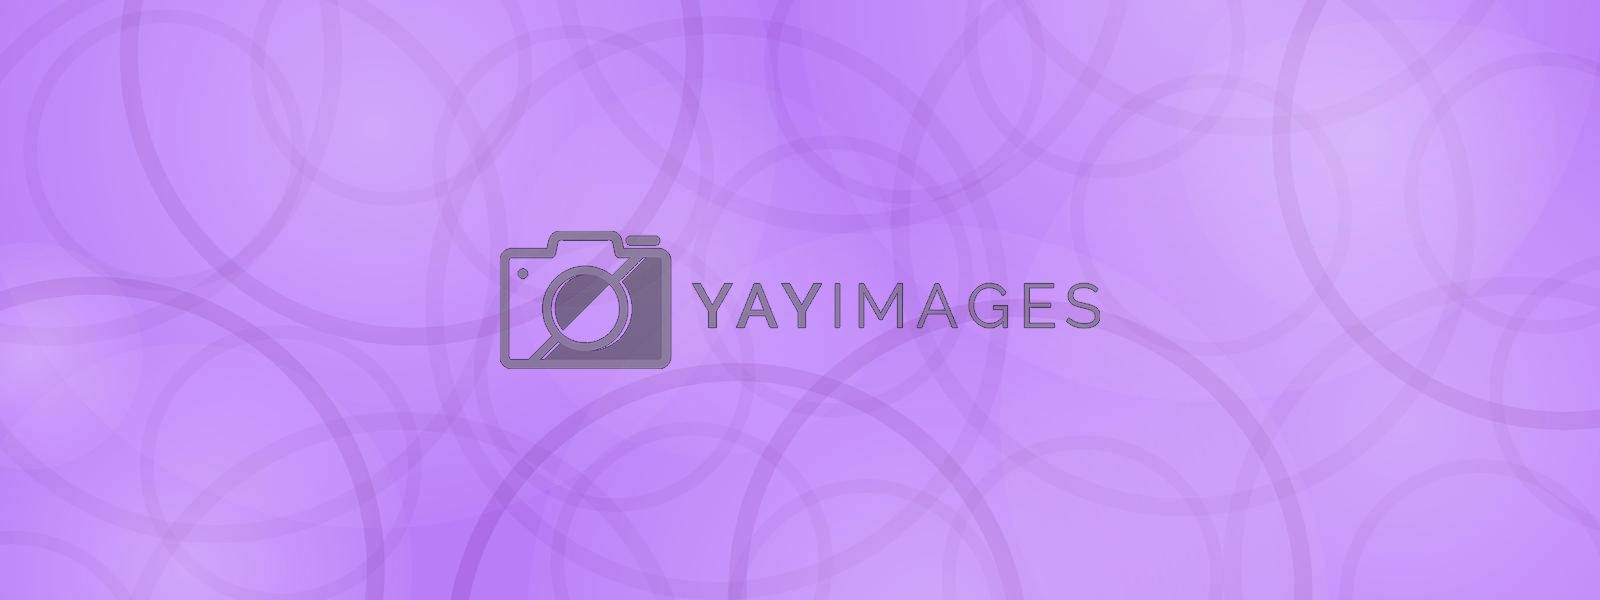 Abstract purple background with overlapping circles. Gradient purple background template for banners, cards, posters. Creative design.